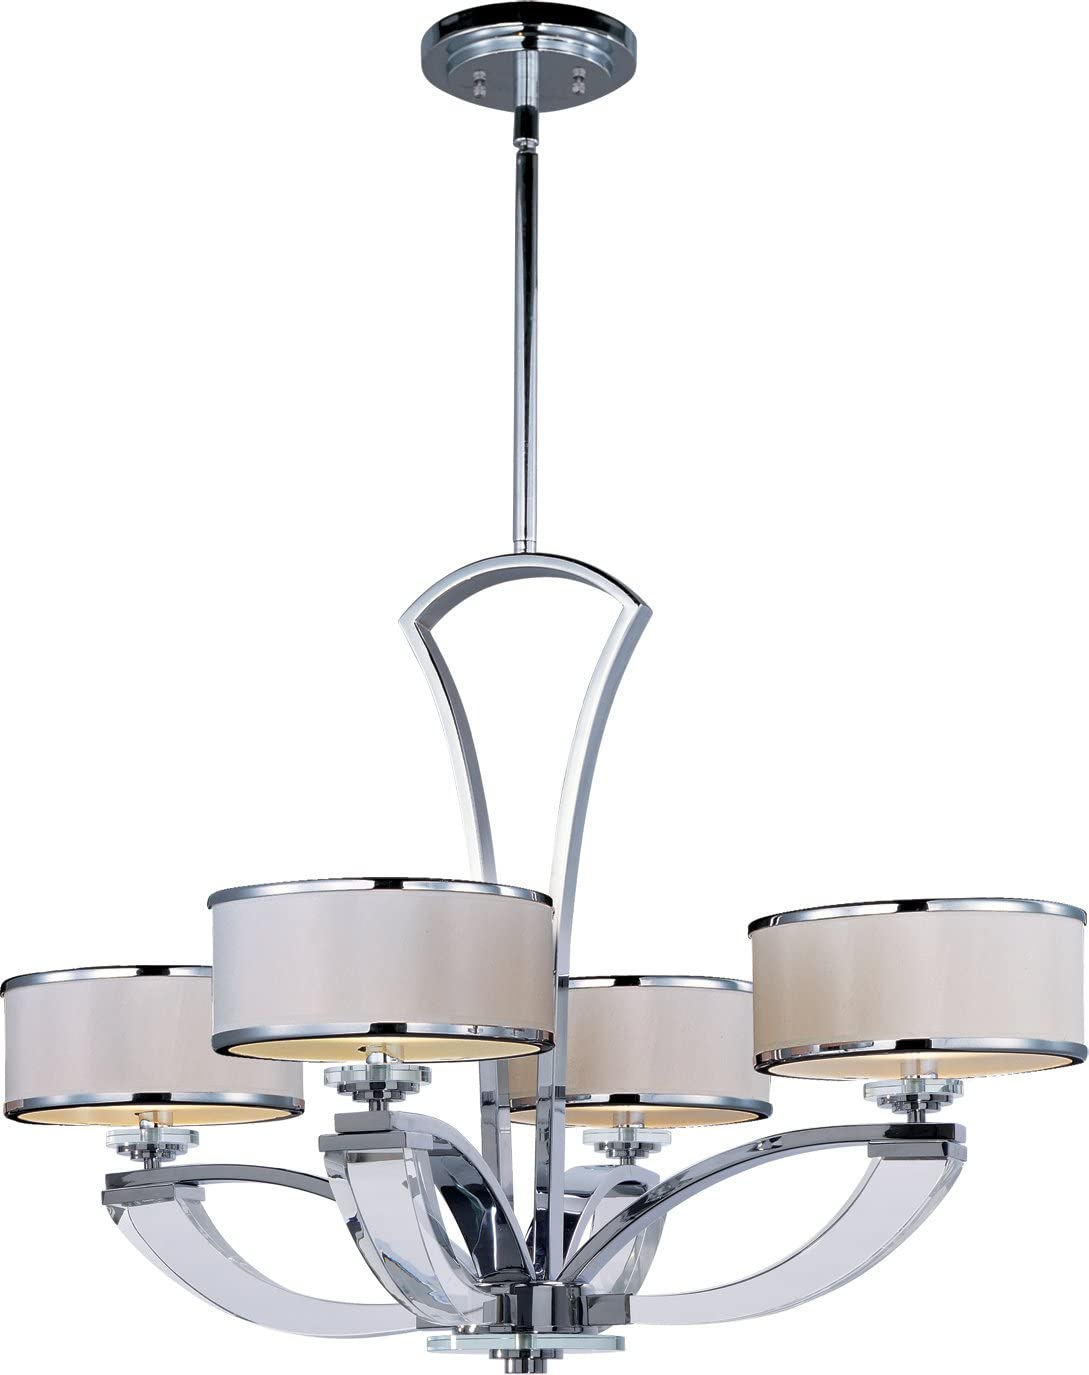 Maxim 39824BCWTPC Metro 4-Light Chandelier, Polished Chrome Finish, Beveled Crystal Glass, G9 Xenon Xenon Bulb , 100W Max., Wet Safety Rating, Standard Dimmable, Glass Shade Material, 1150 Rated Lumens